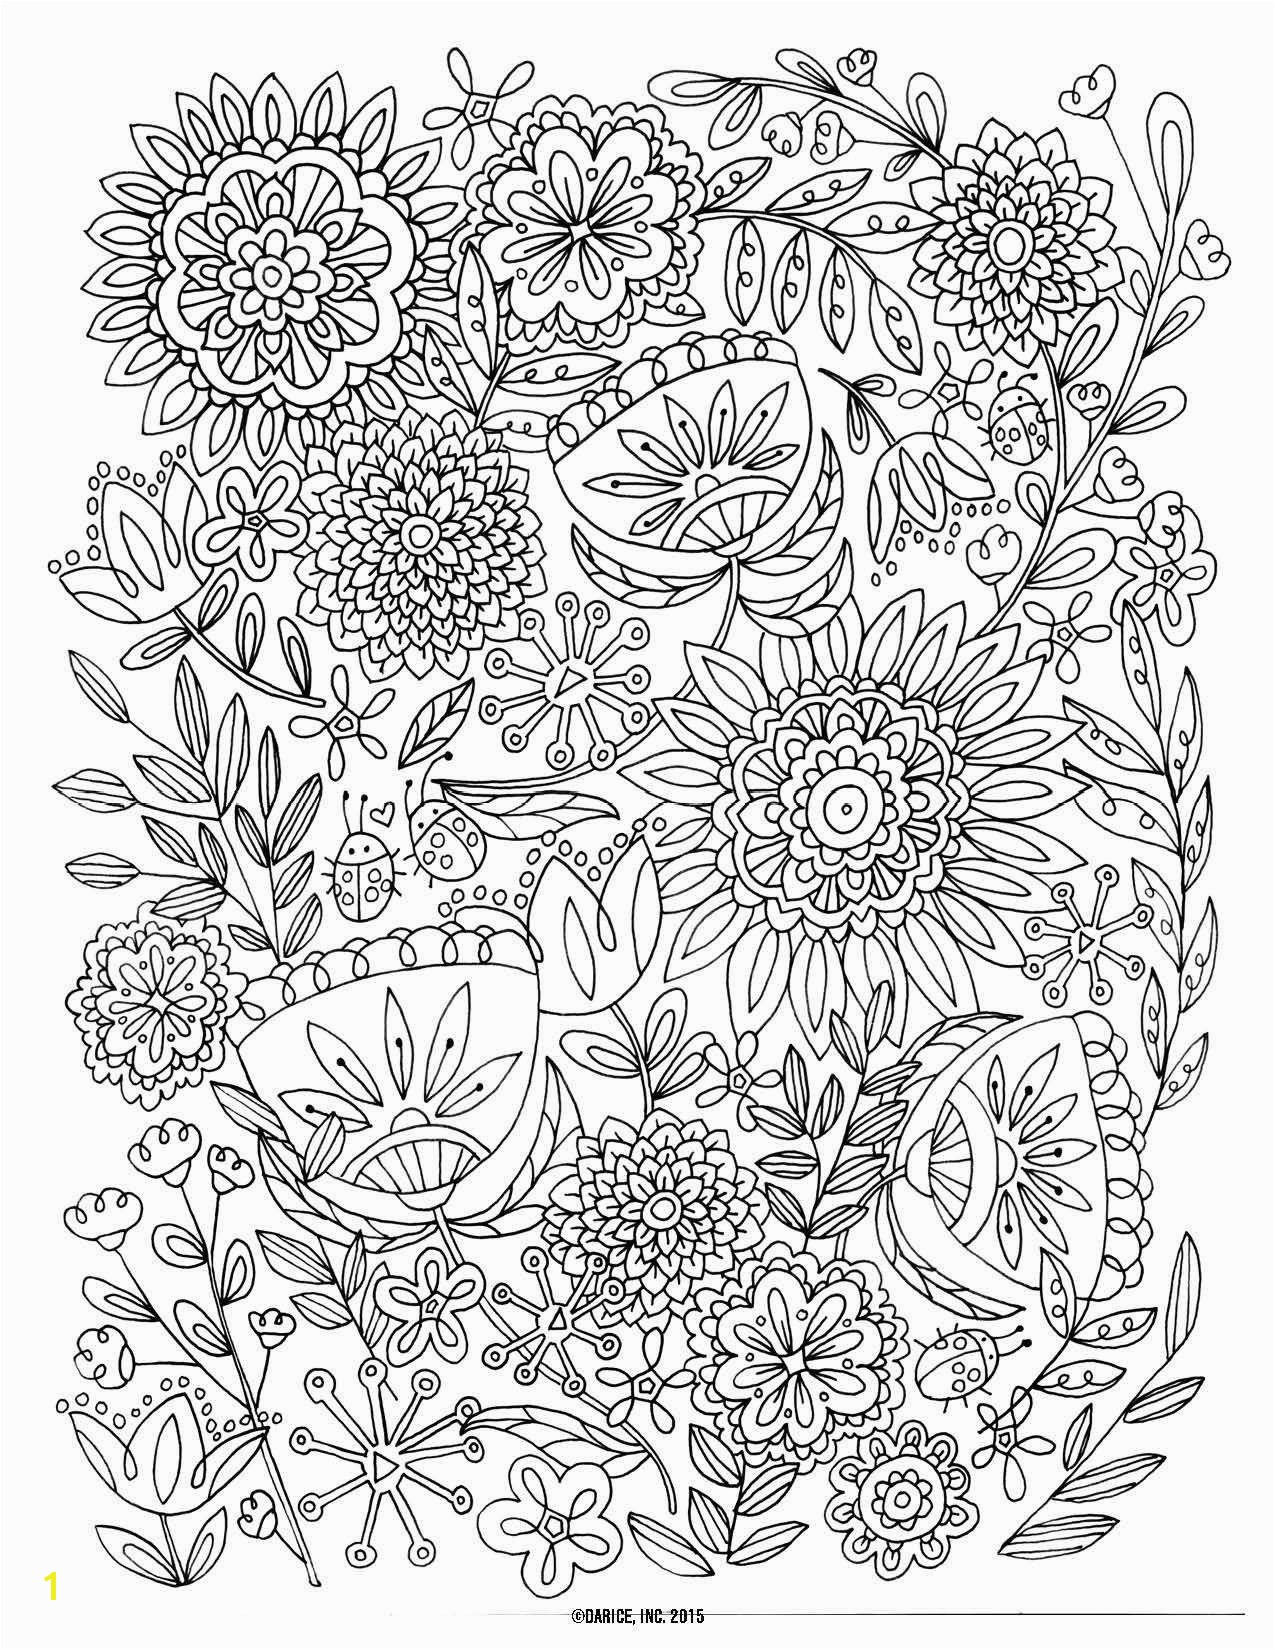 Cool Coloring Page for Adult Od Kids Simple Floral Heart with Ribbon